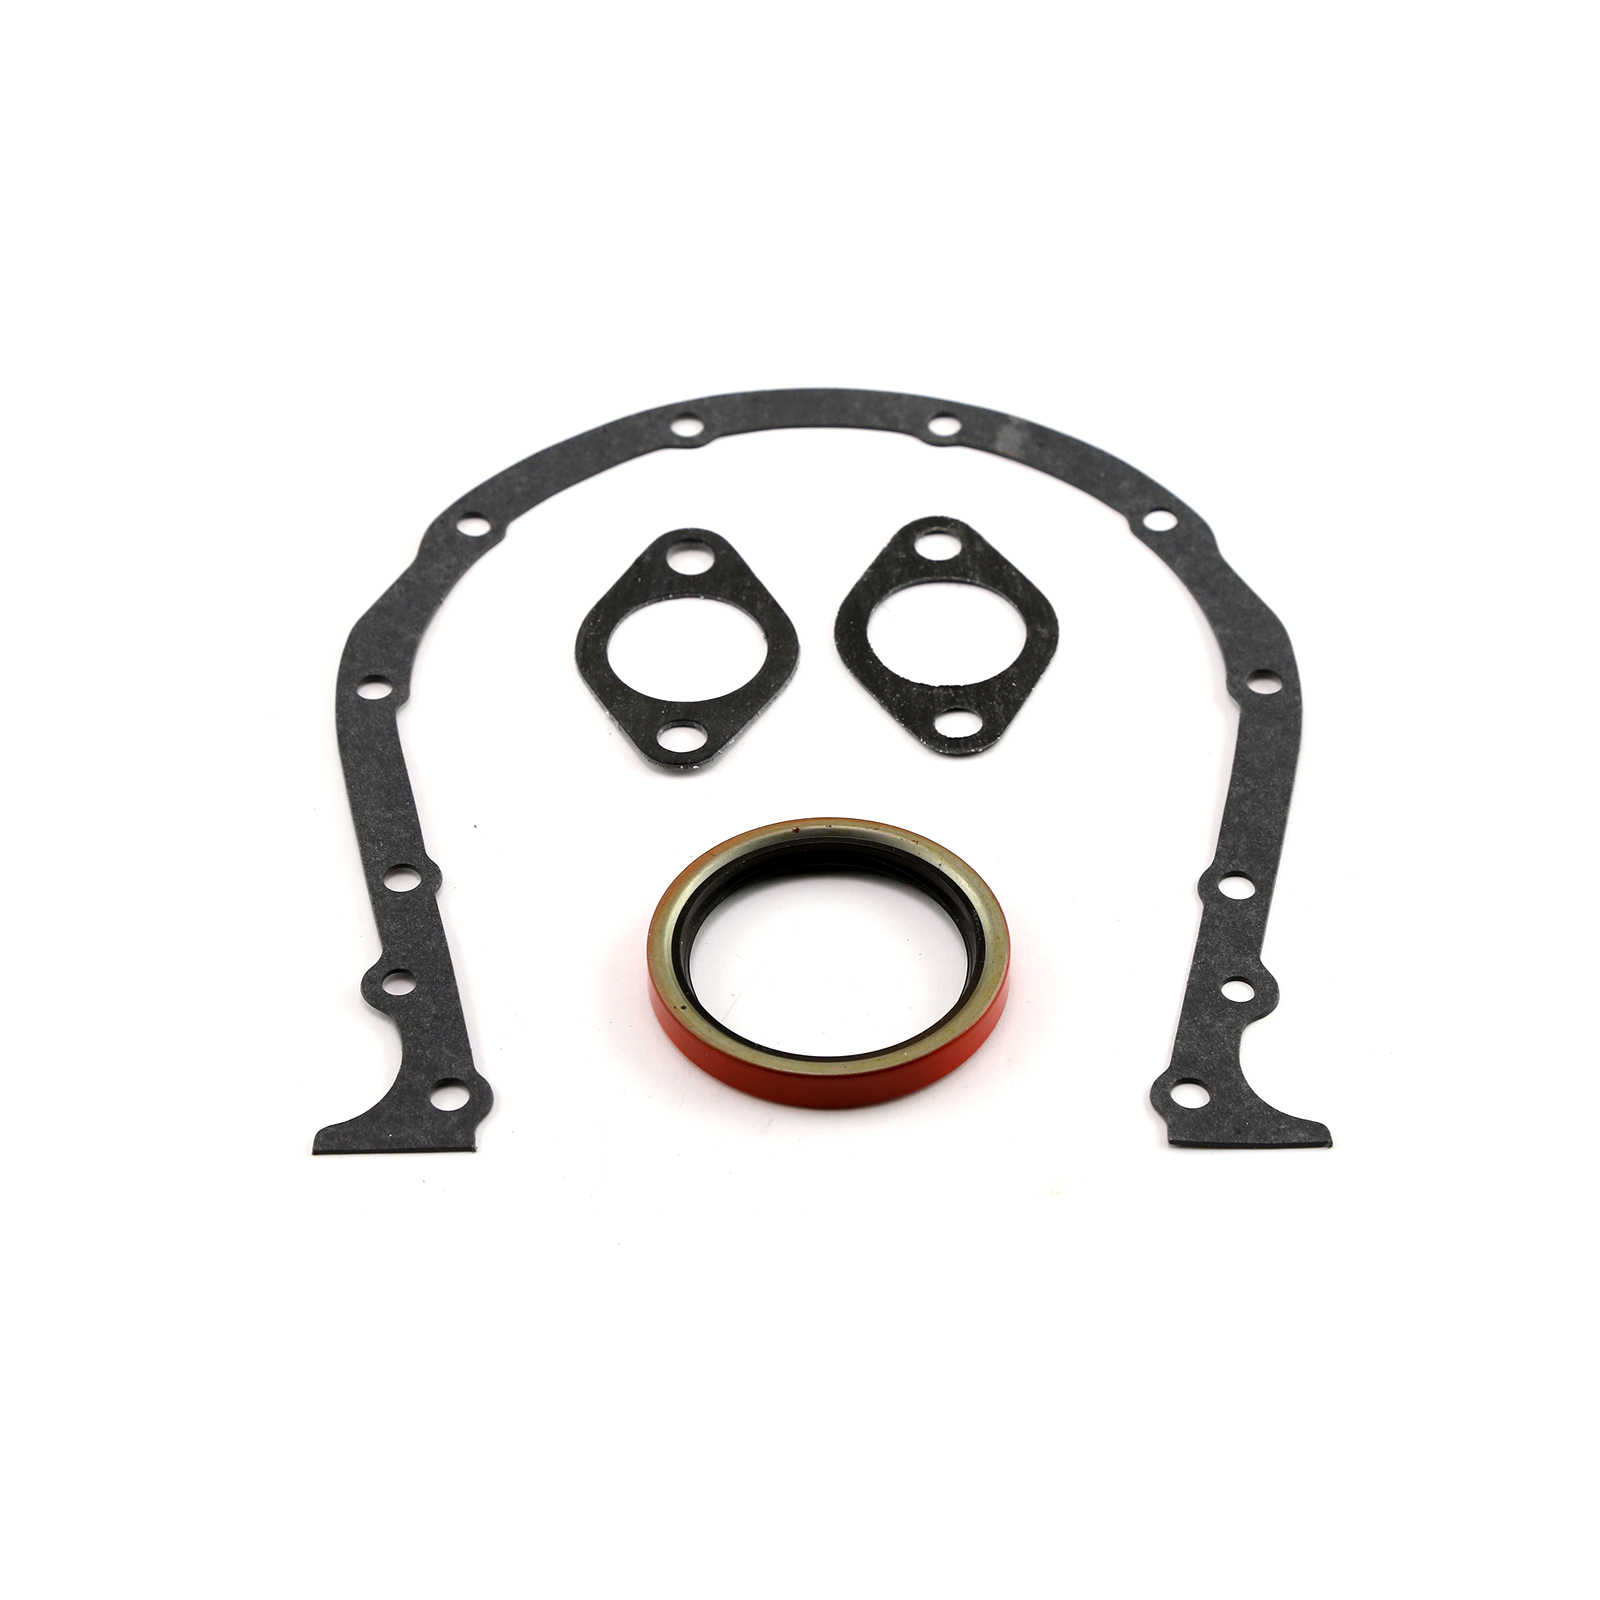 Chevy BBC 454 Timing Cover Gasket Set with Seal